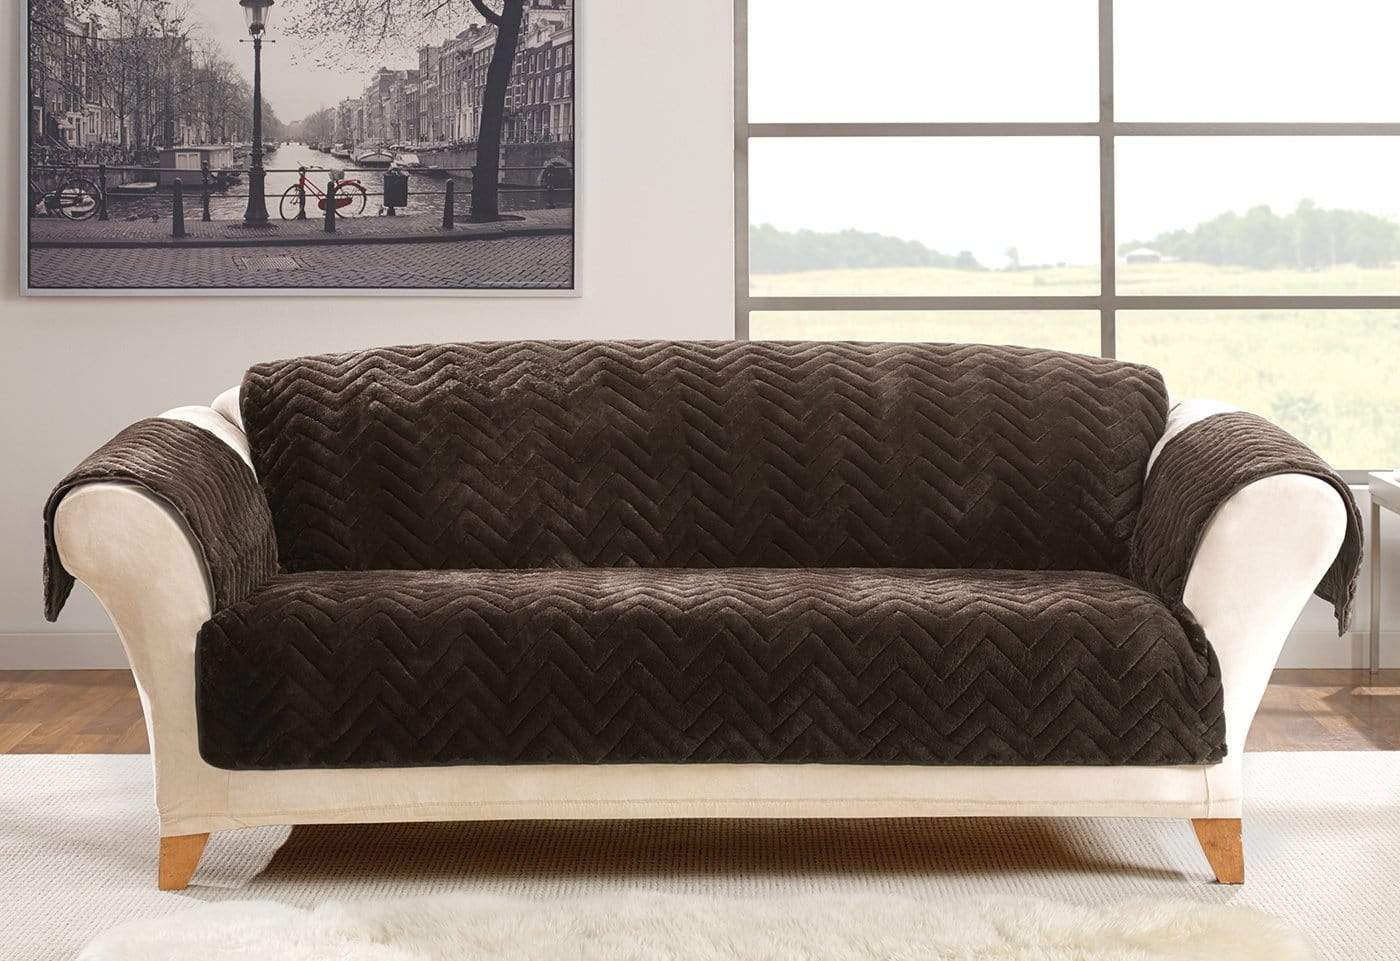 Faux Fur Chevron Sofa Furniture Cover 100% Polyester Pet Furniture Cover Machine Washable - Sofa / Chocolate